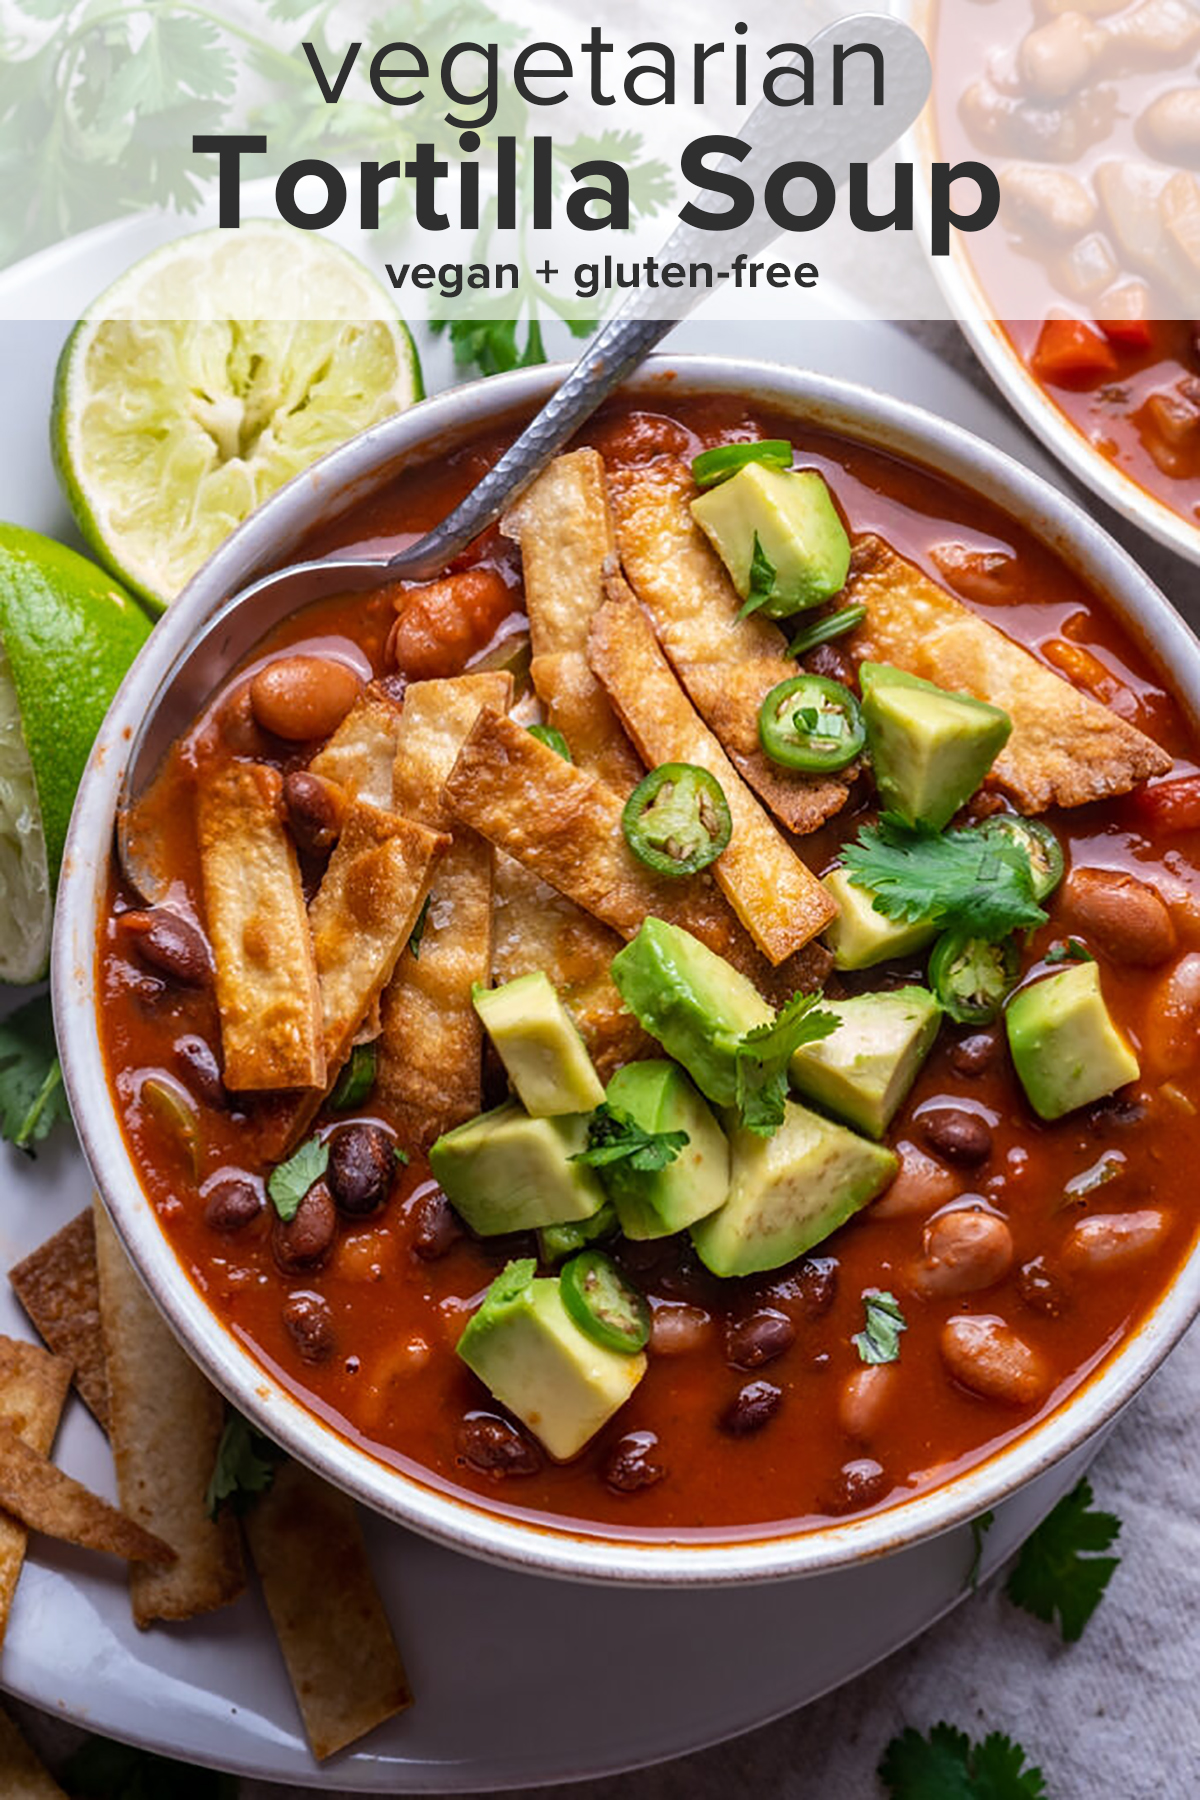 A bowl of Vegetarian Tortilla Soup with a spoon and the recipe title on top of the picture.